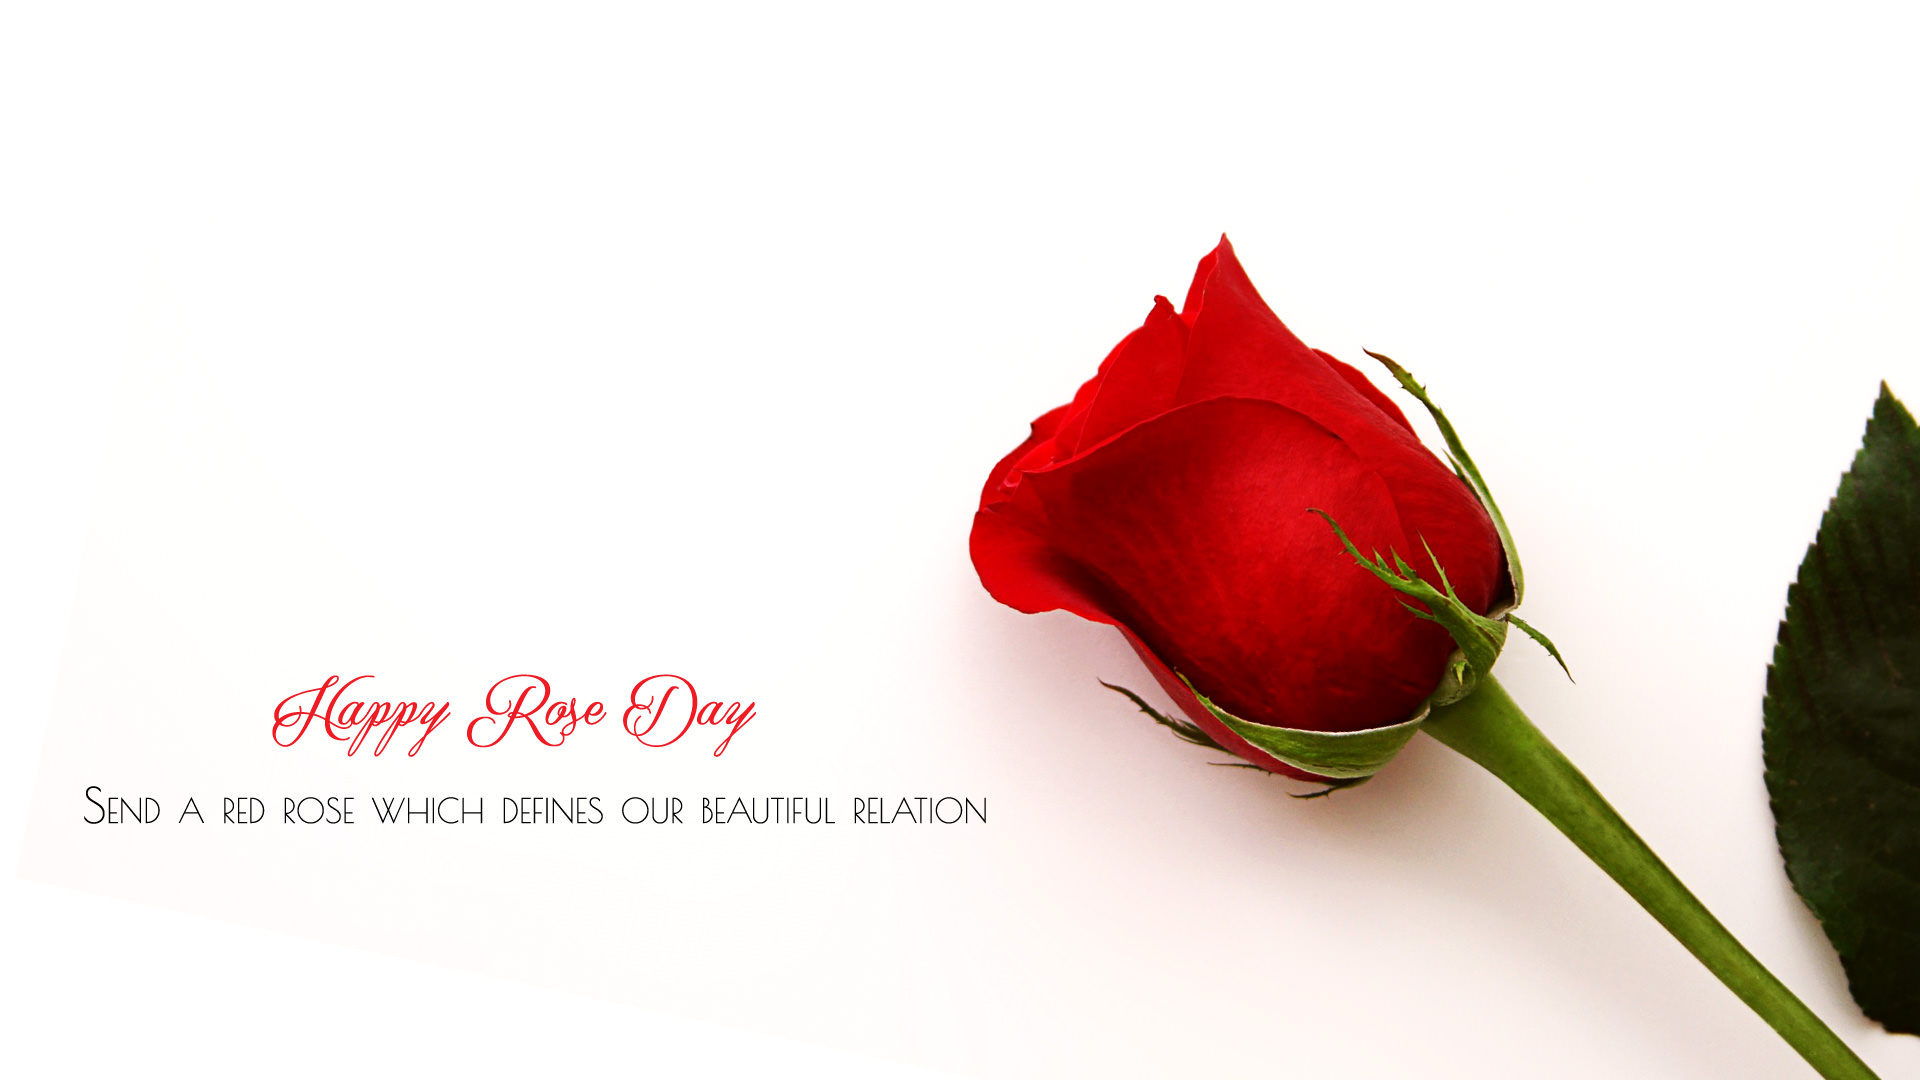 7th Feb Rose Day Wallpaper HD All Color Of Roses For